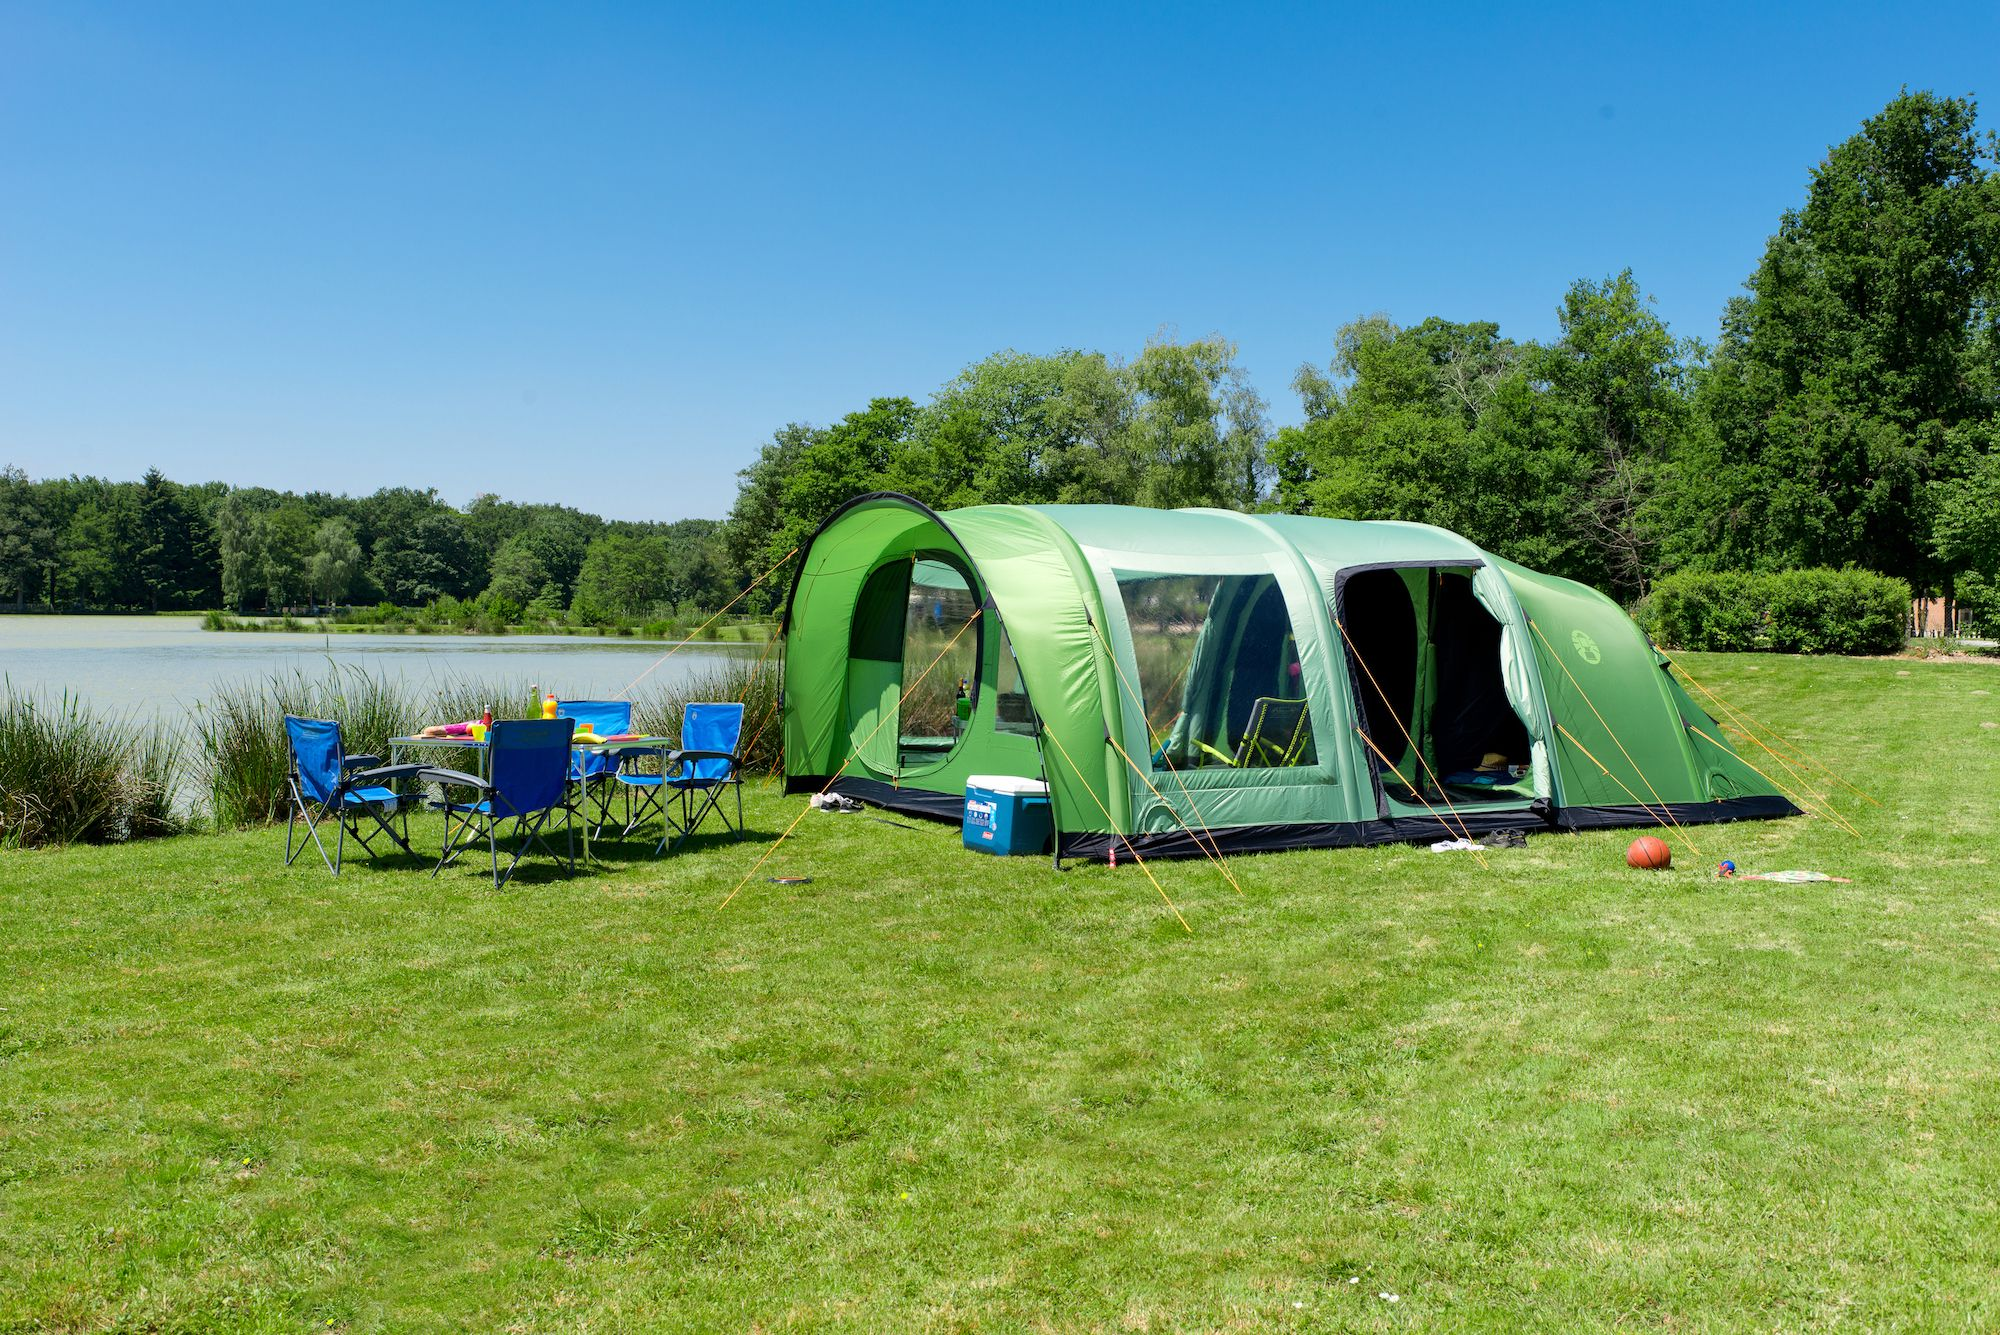 Win Coleman Camping Gear Worth Over 163 1 000